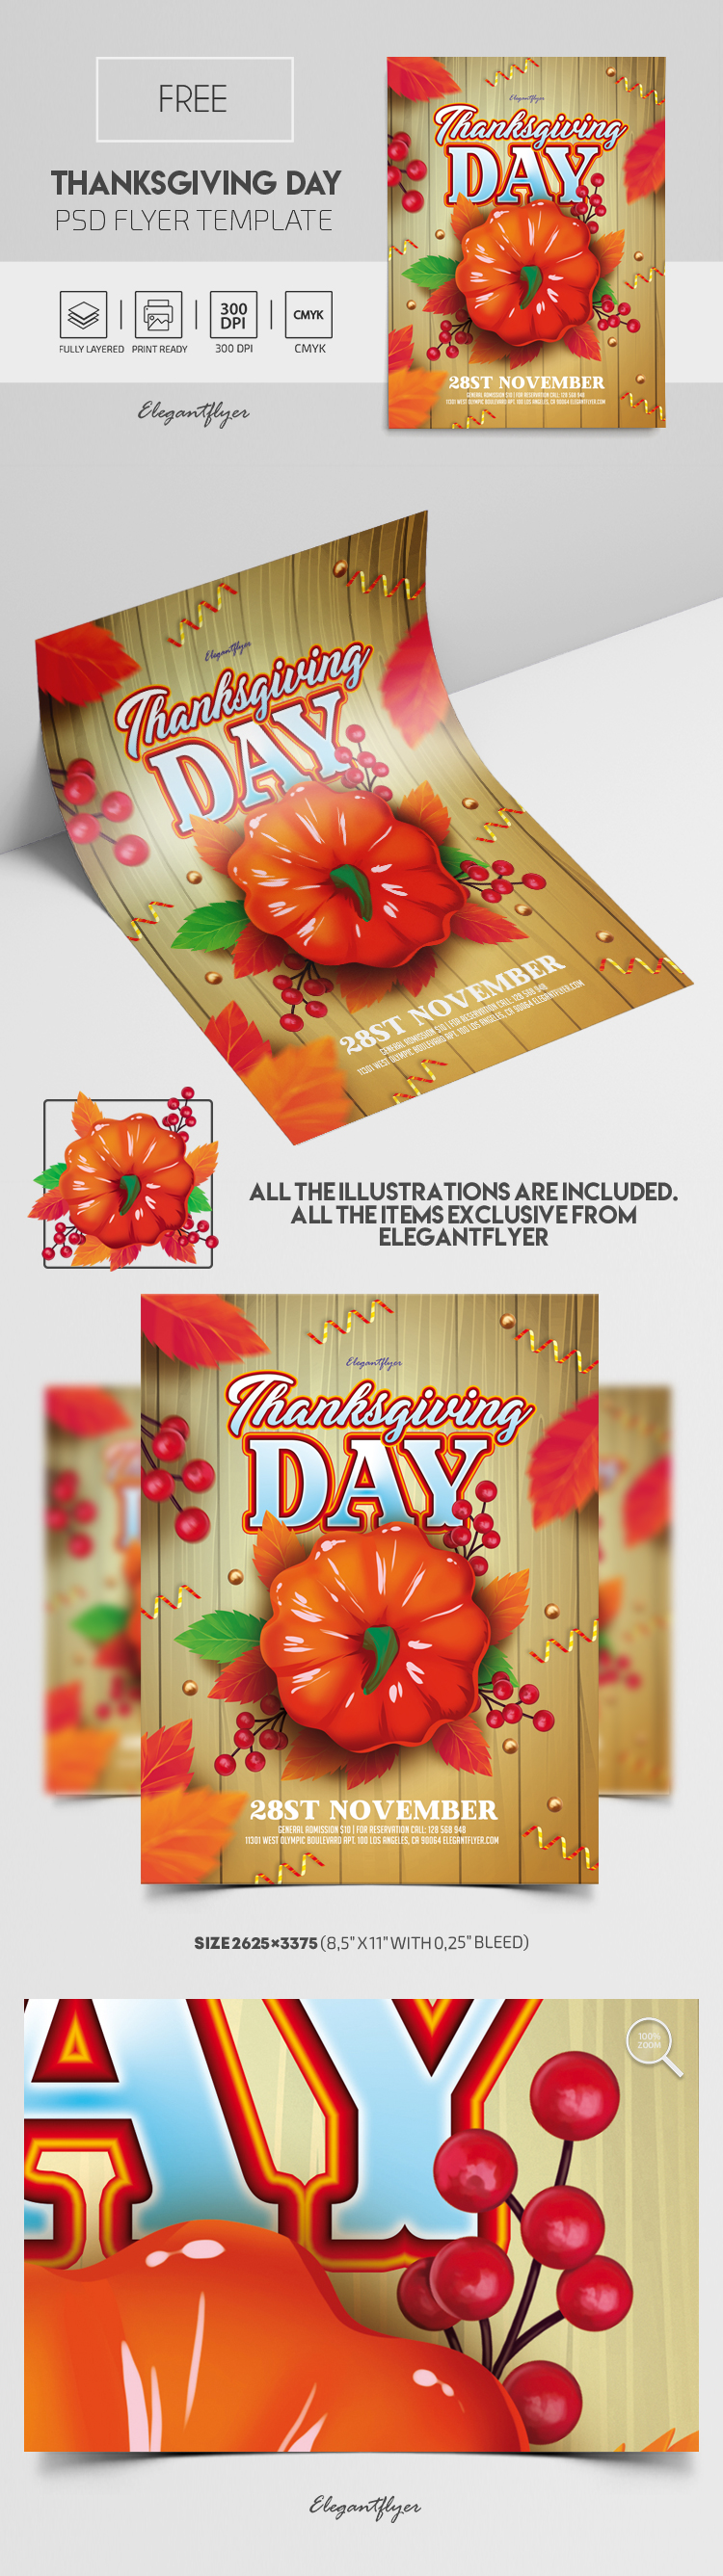 Thanksgiving Day – Free PSD Flyer Template